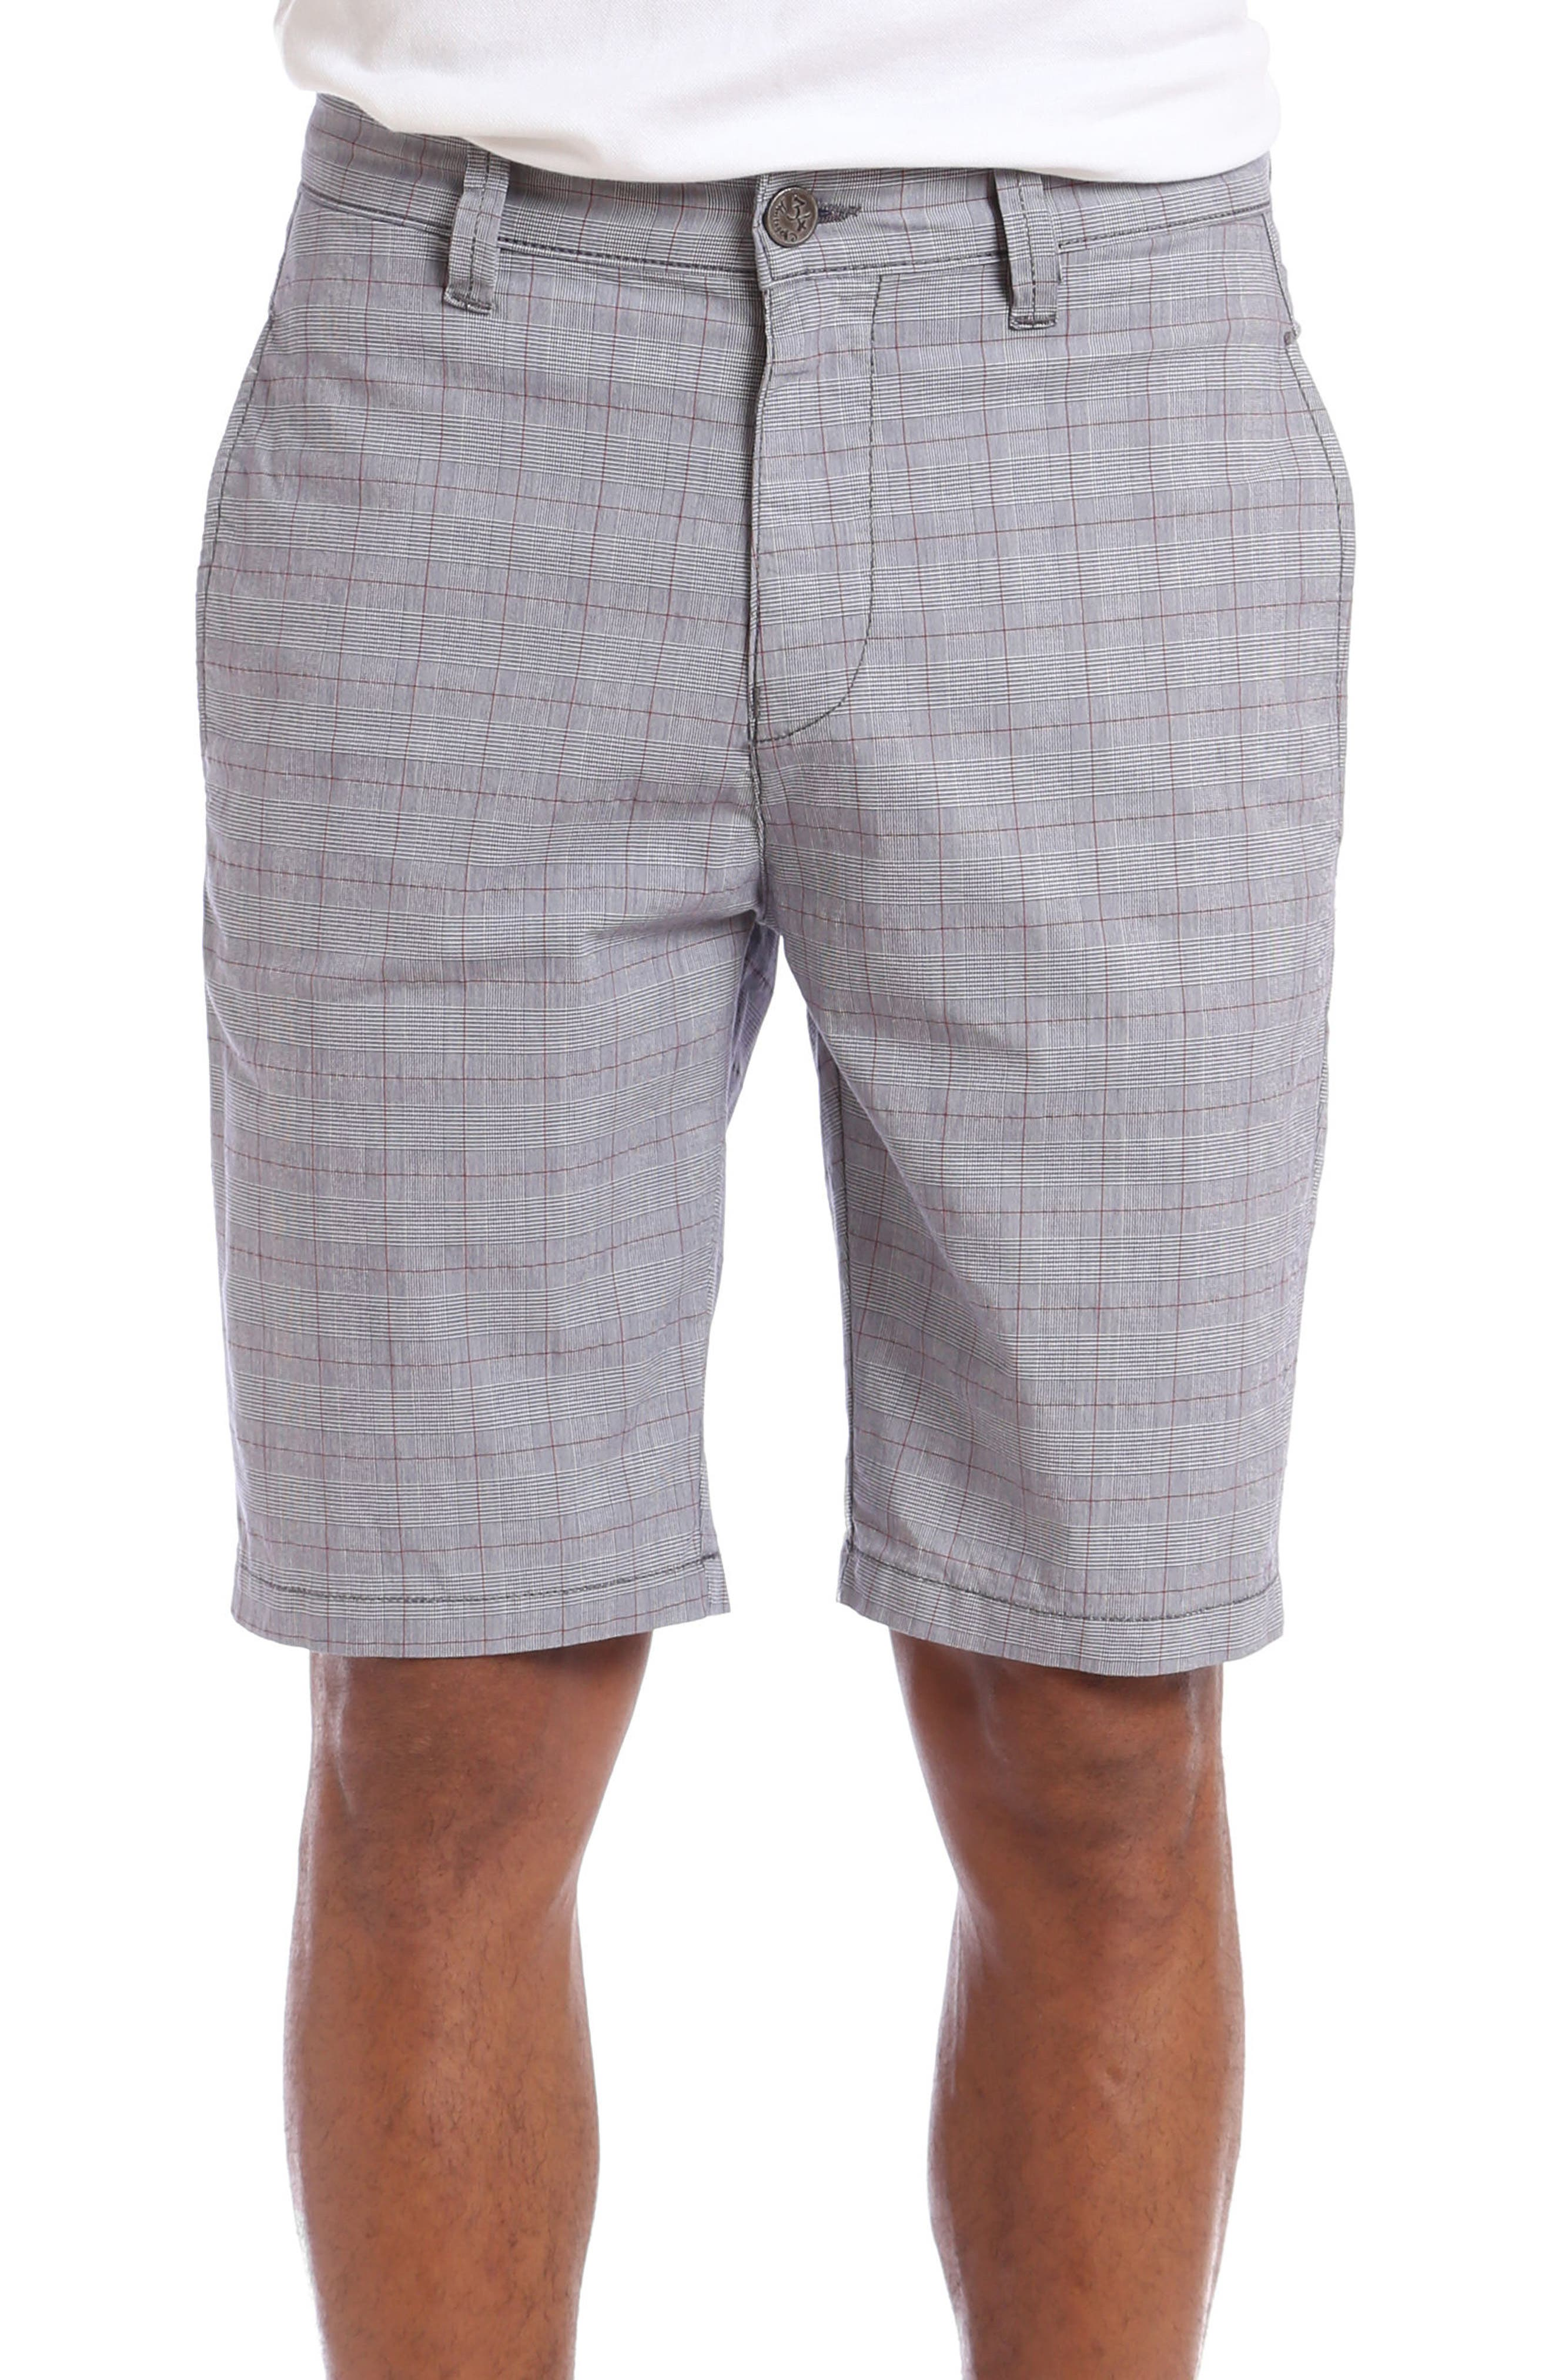 Nevada Twill Shorts,                         Main,                         color, Grey Plaid